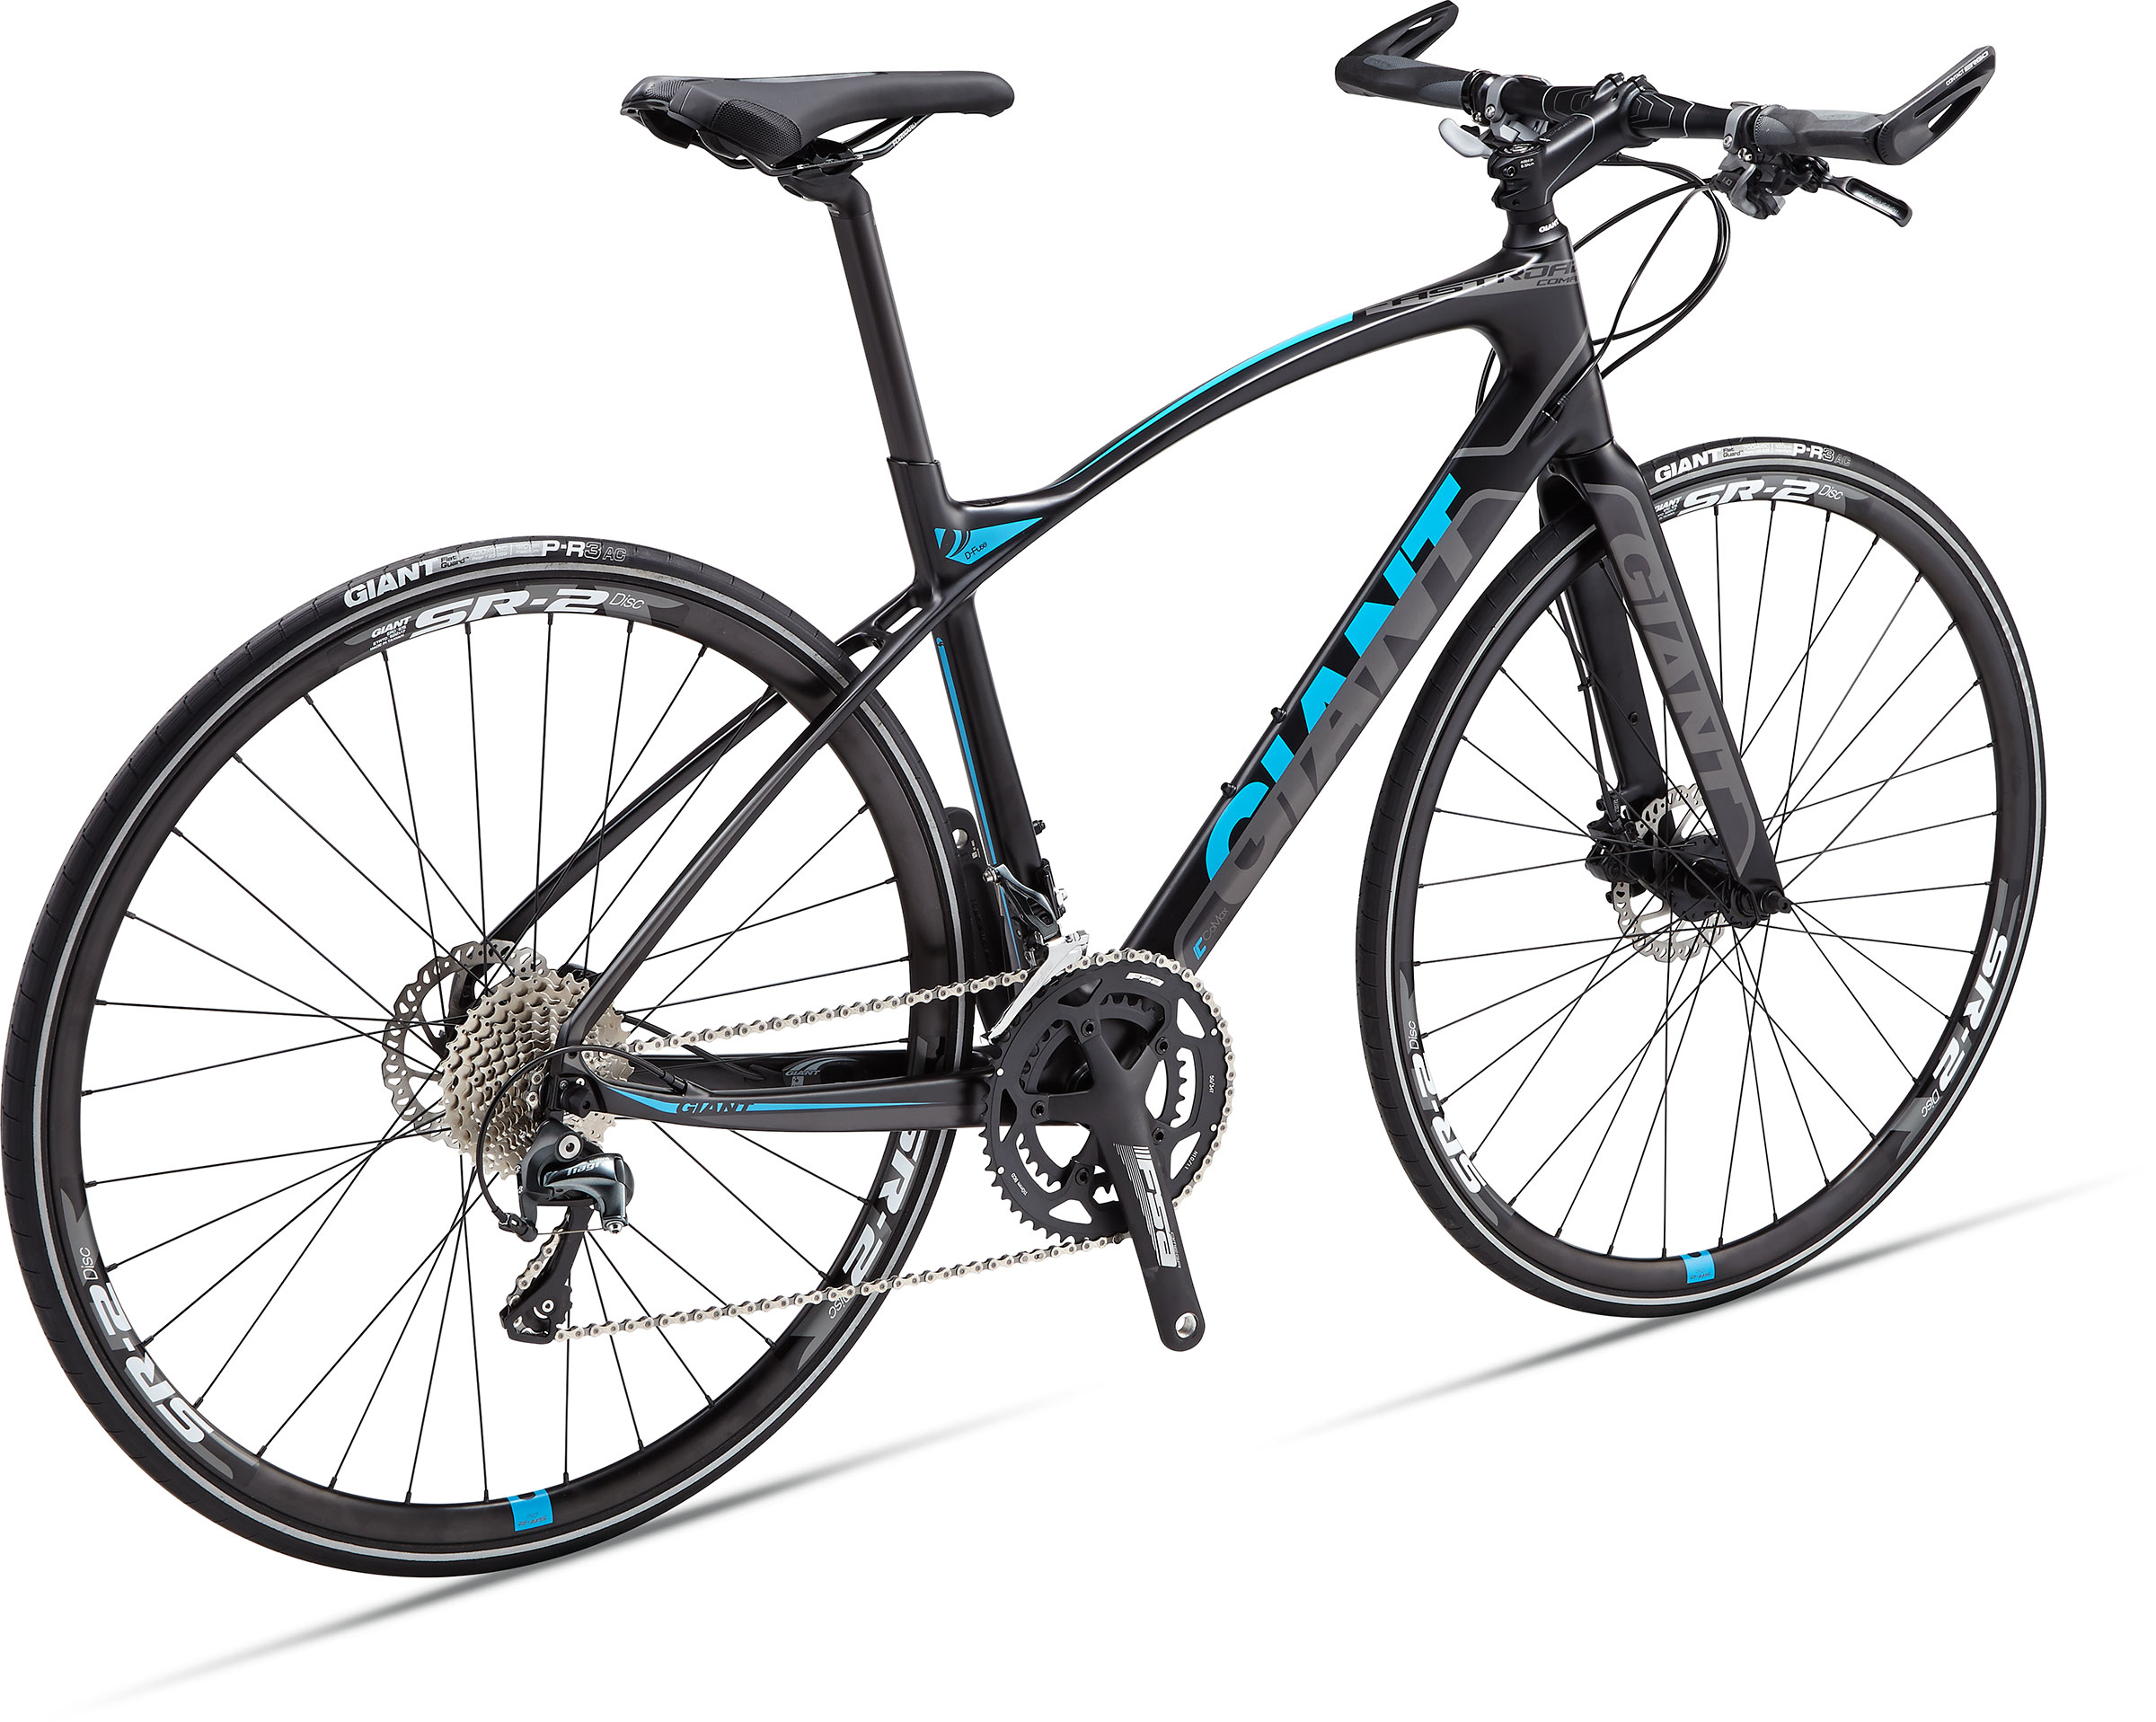 a6d2bc004ff Giant FastRoad CoMax 2 - Bicycle Source US serving the Tri State area  973-300-2453